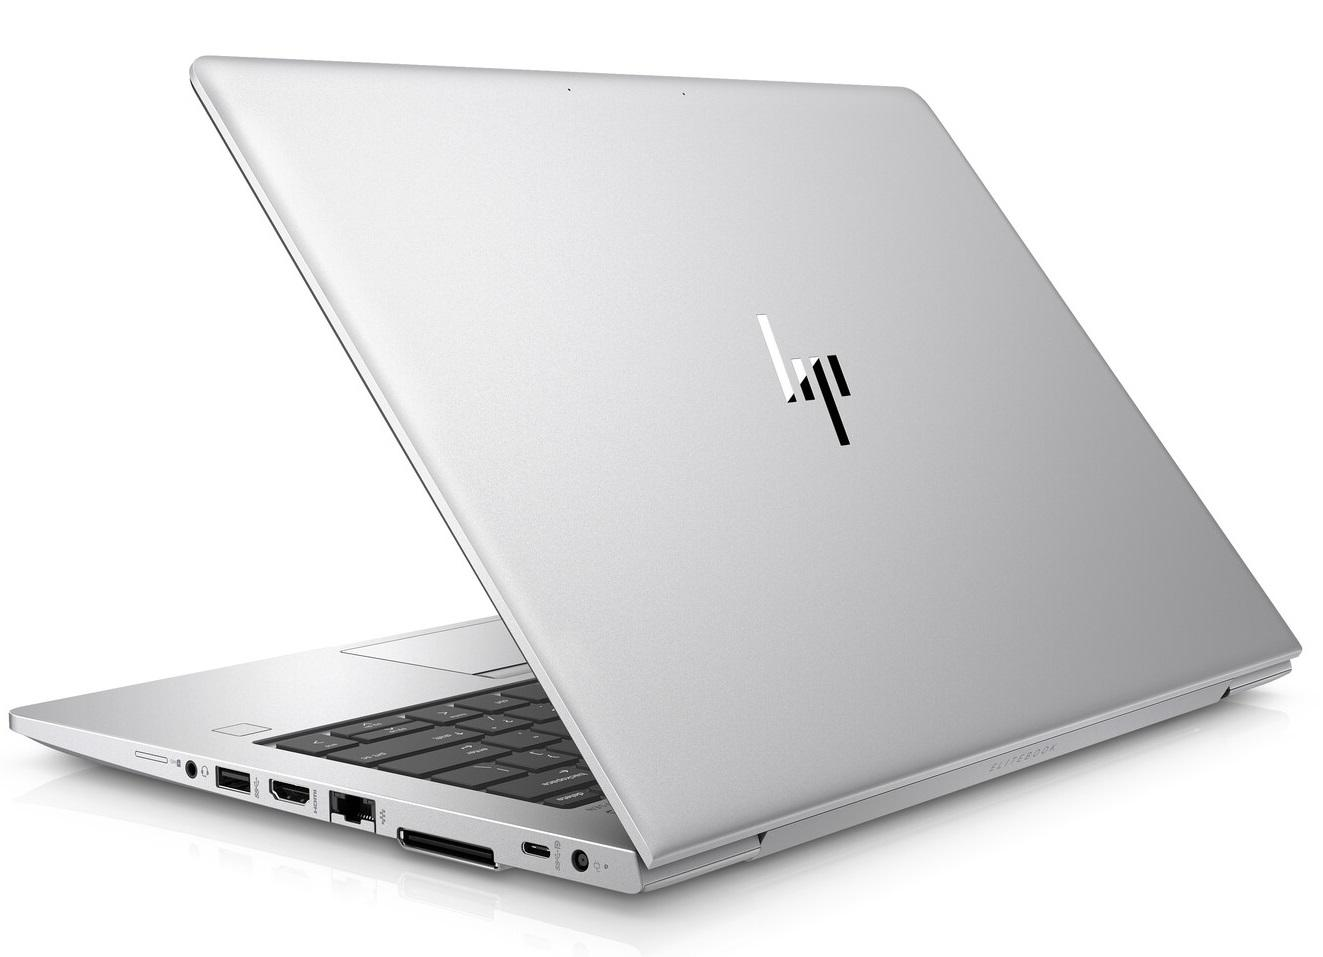 hp-elitebook-735-g6-ryzen-laptop-notebook.jpg